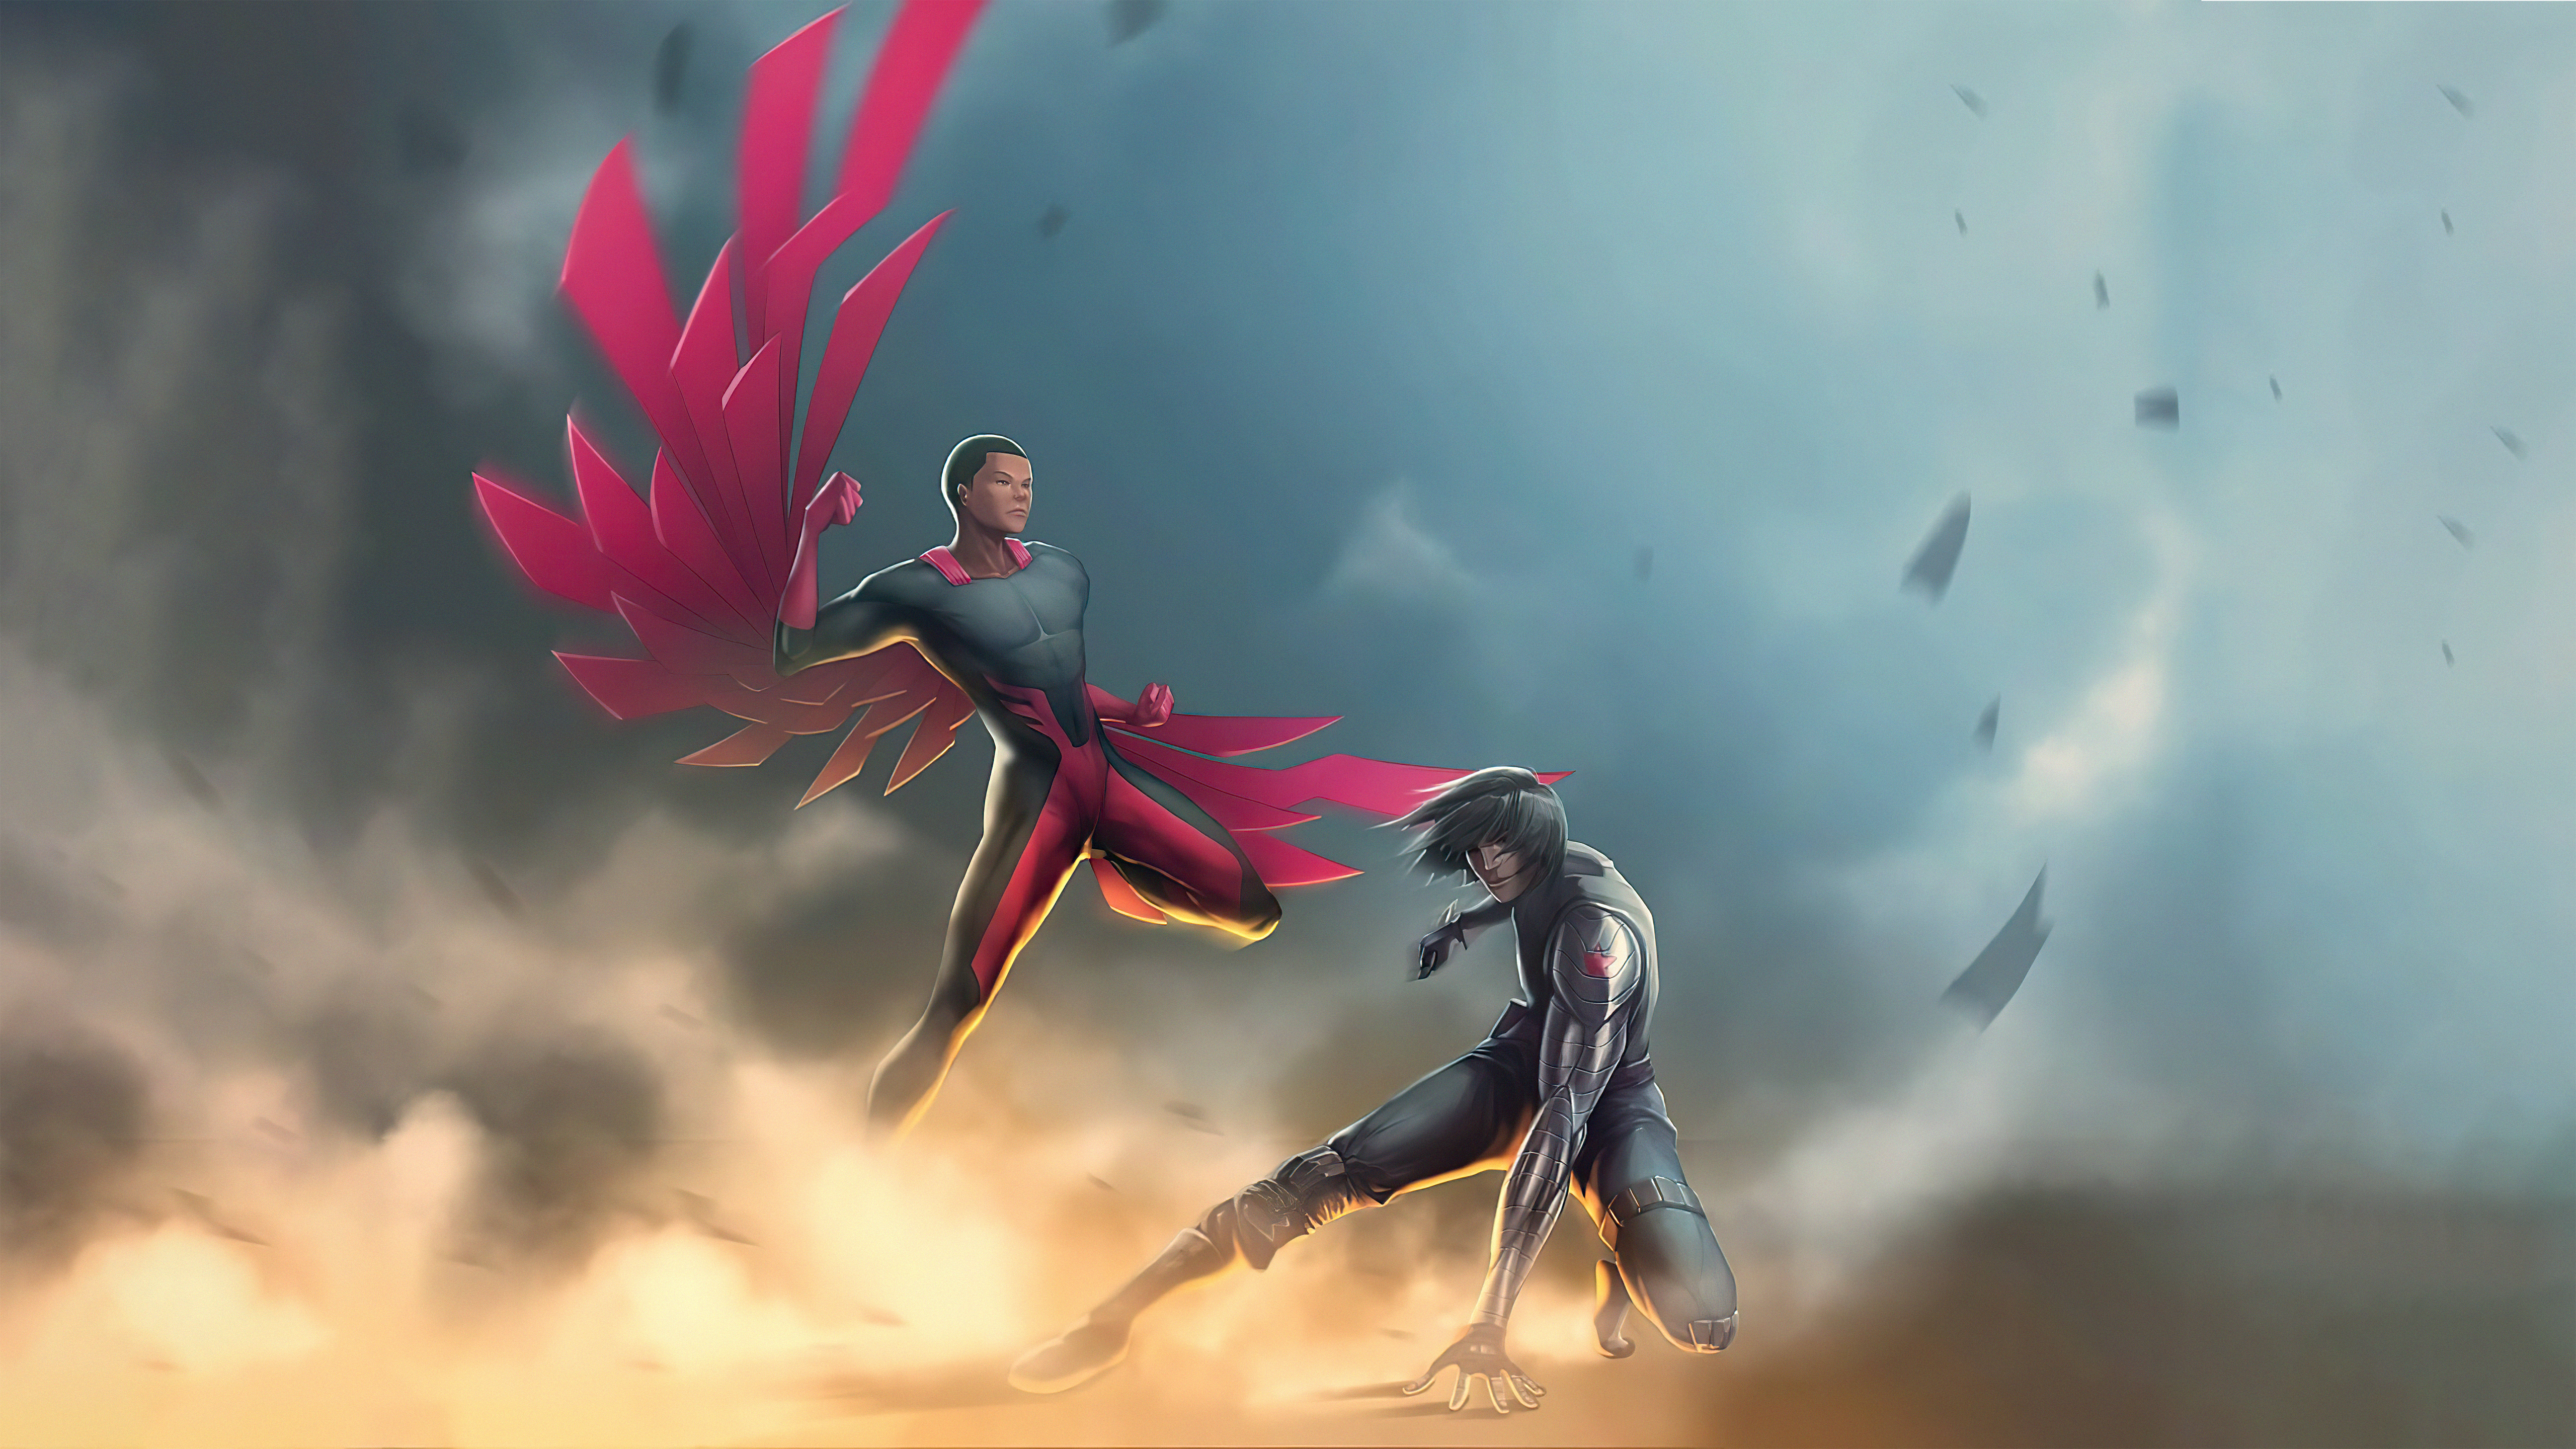 Wallpaper Falcon and the winter soldier